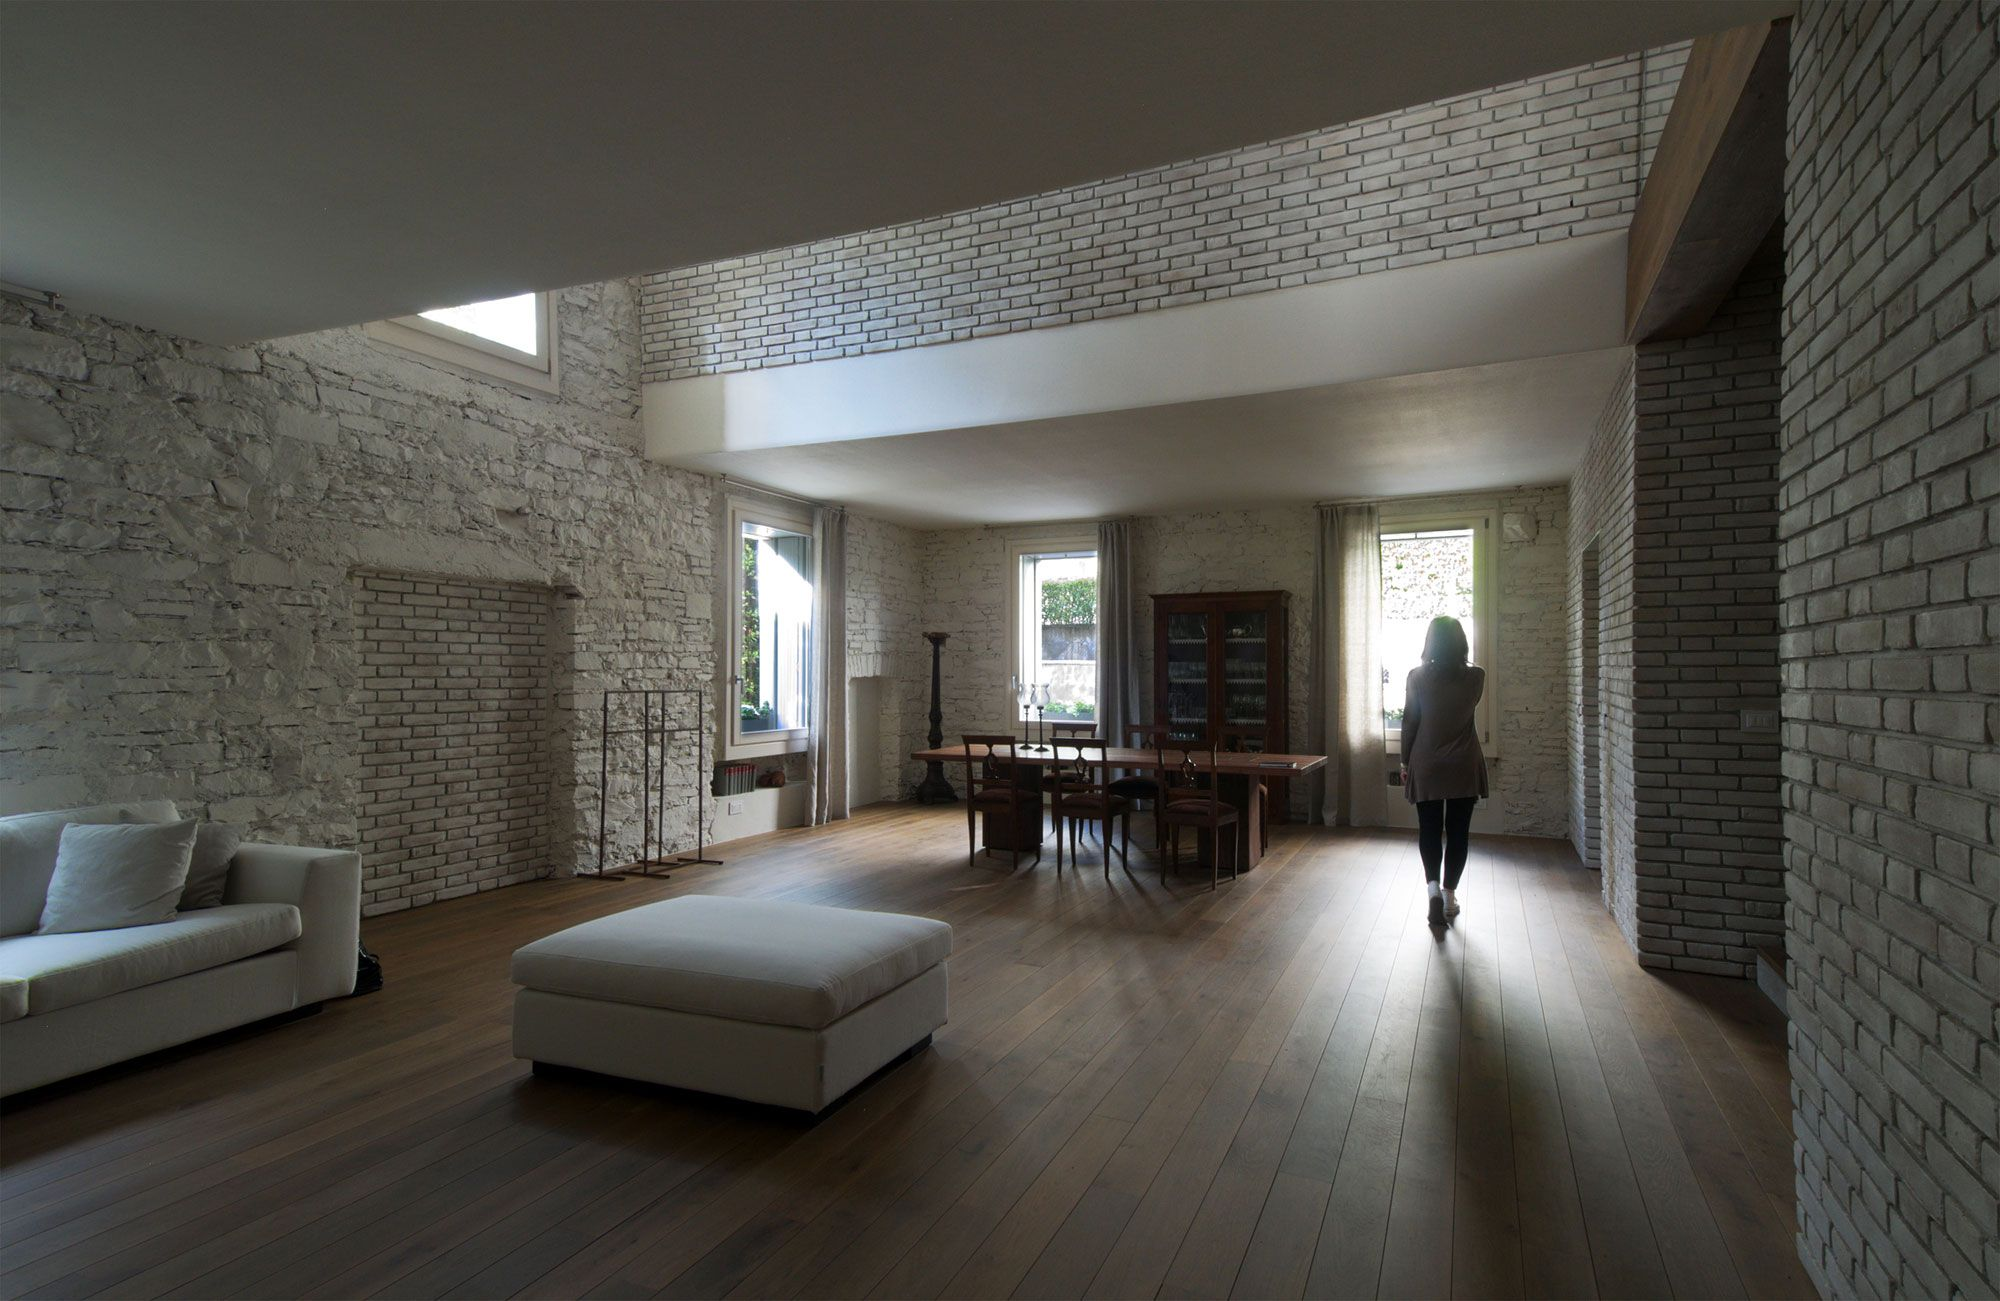 white brick walls white bricks brick interior home interior interior